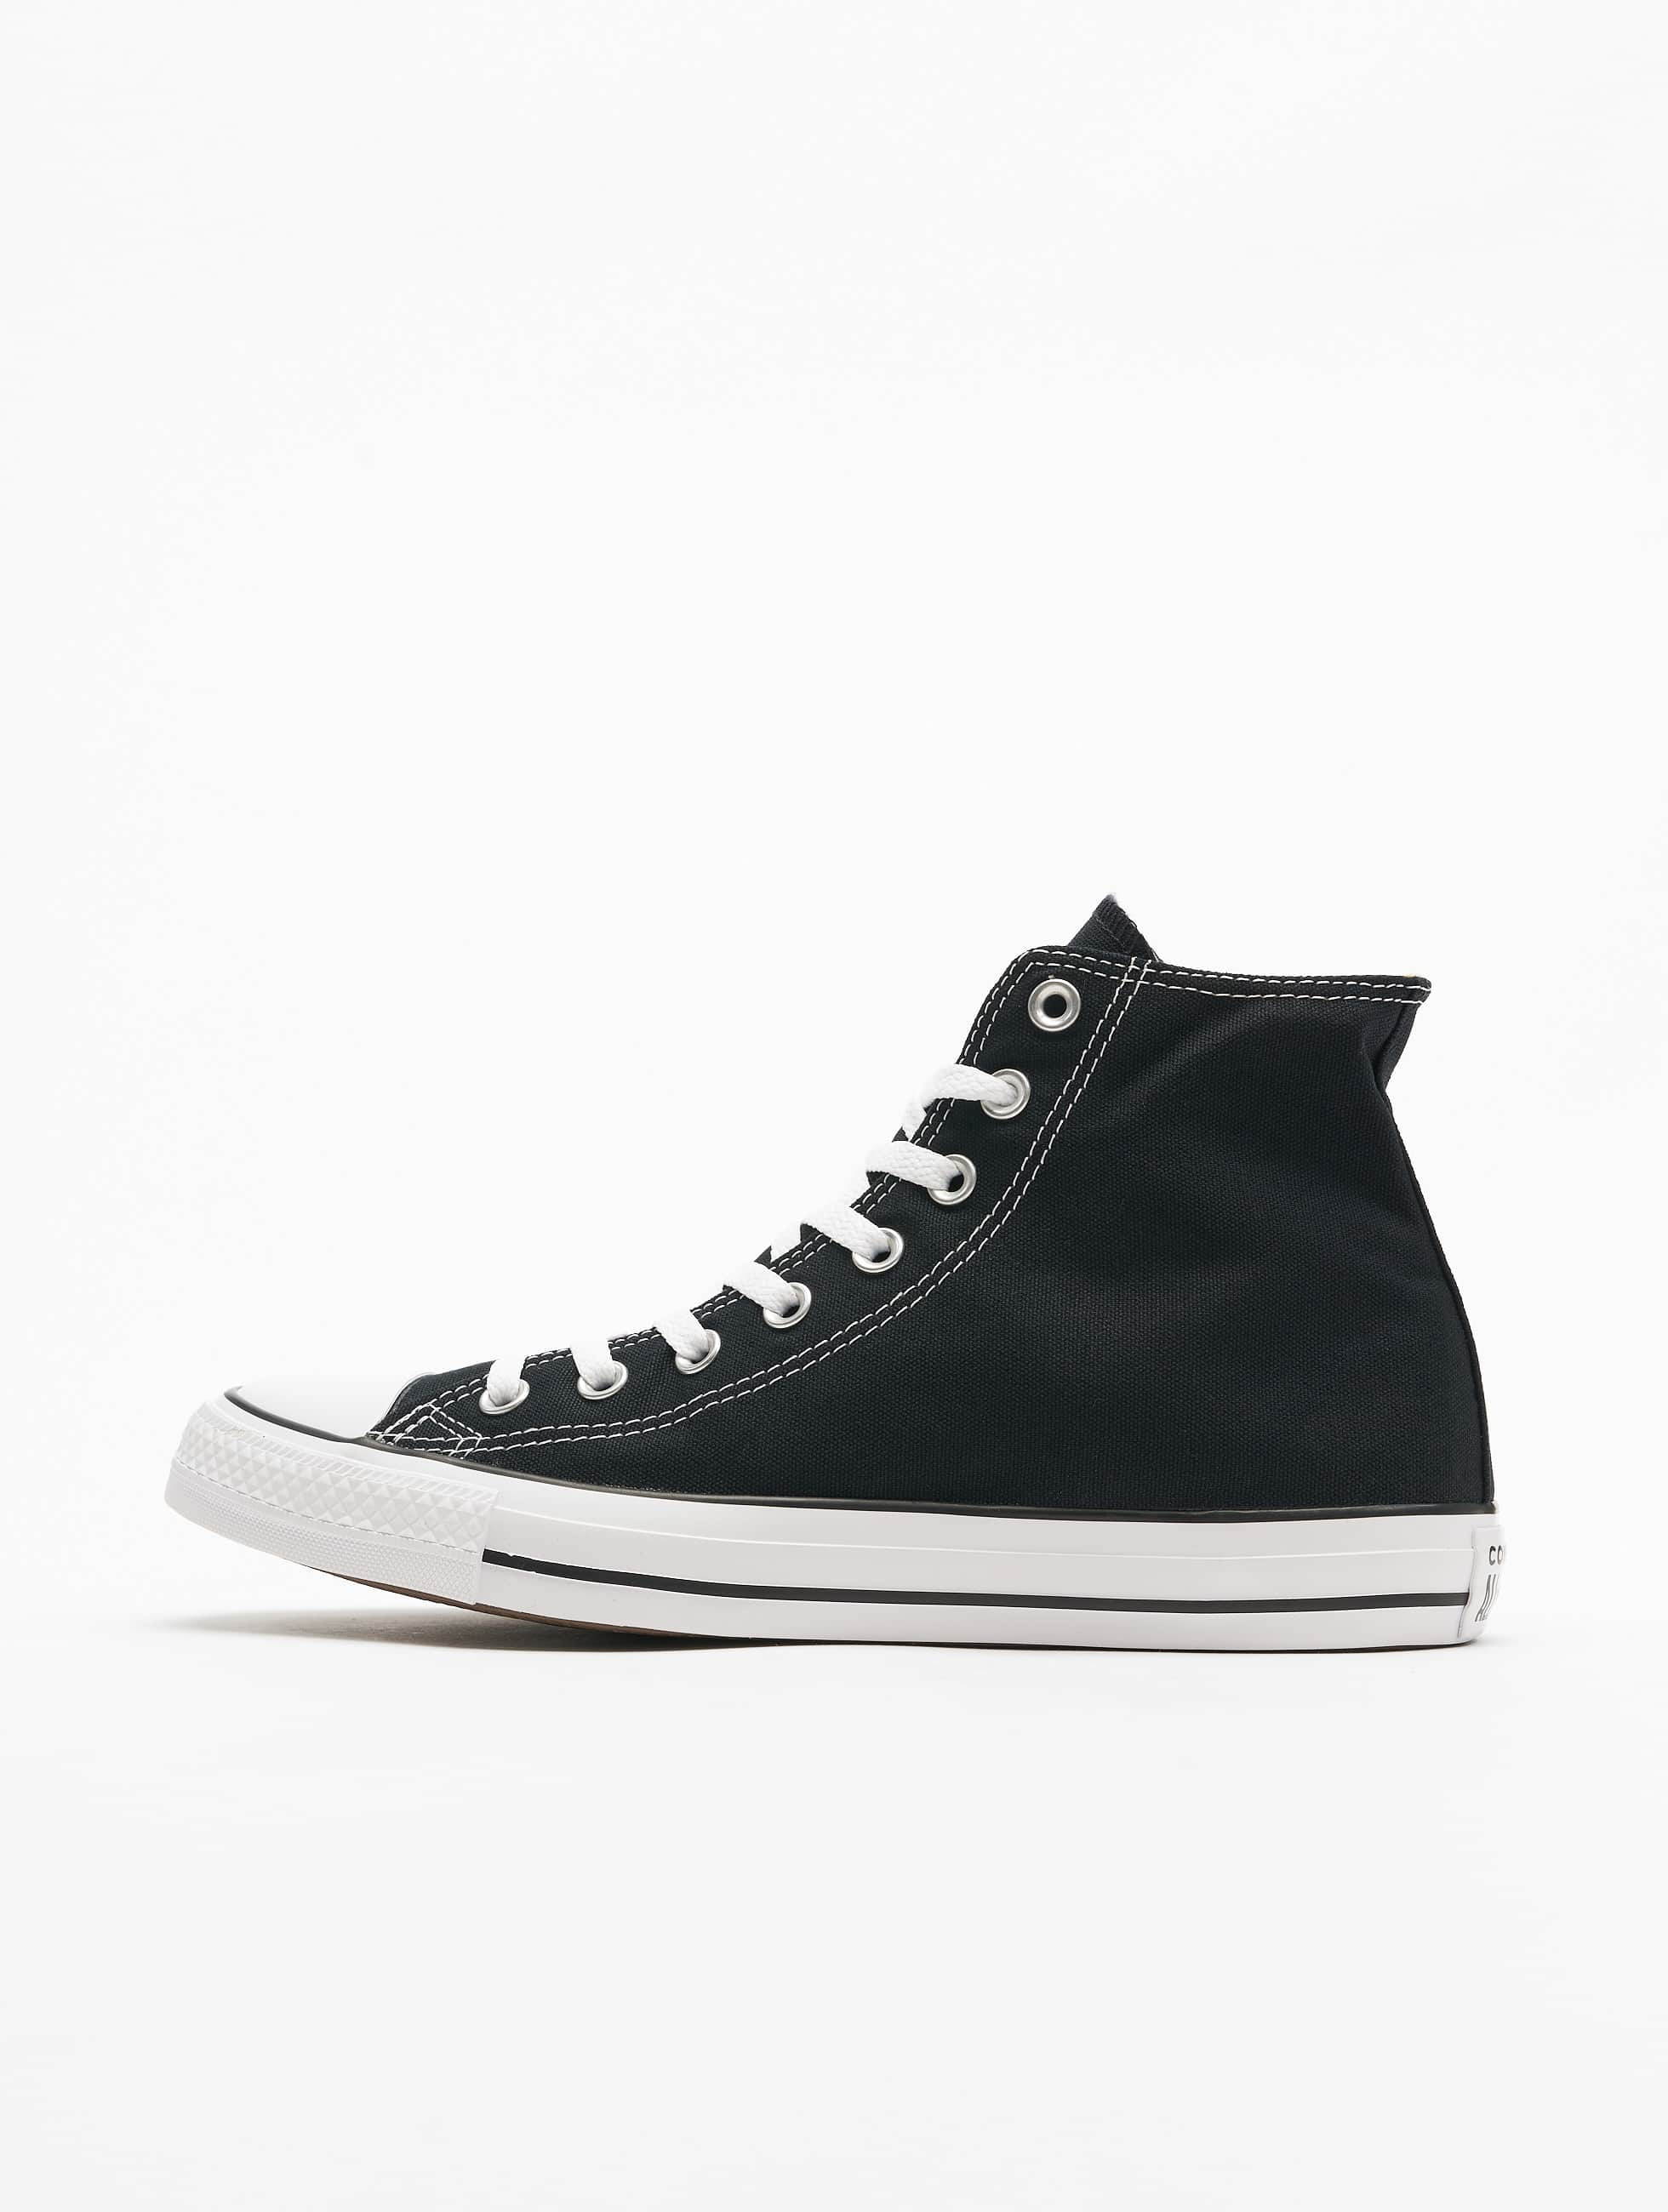 Sneaker All Star High Chucks in schwarz